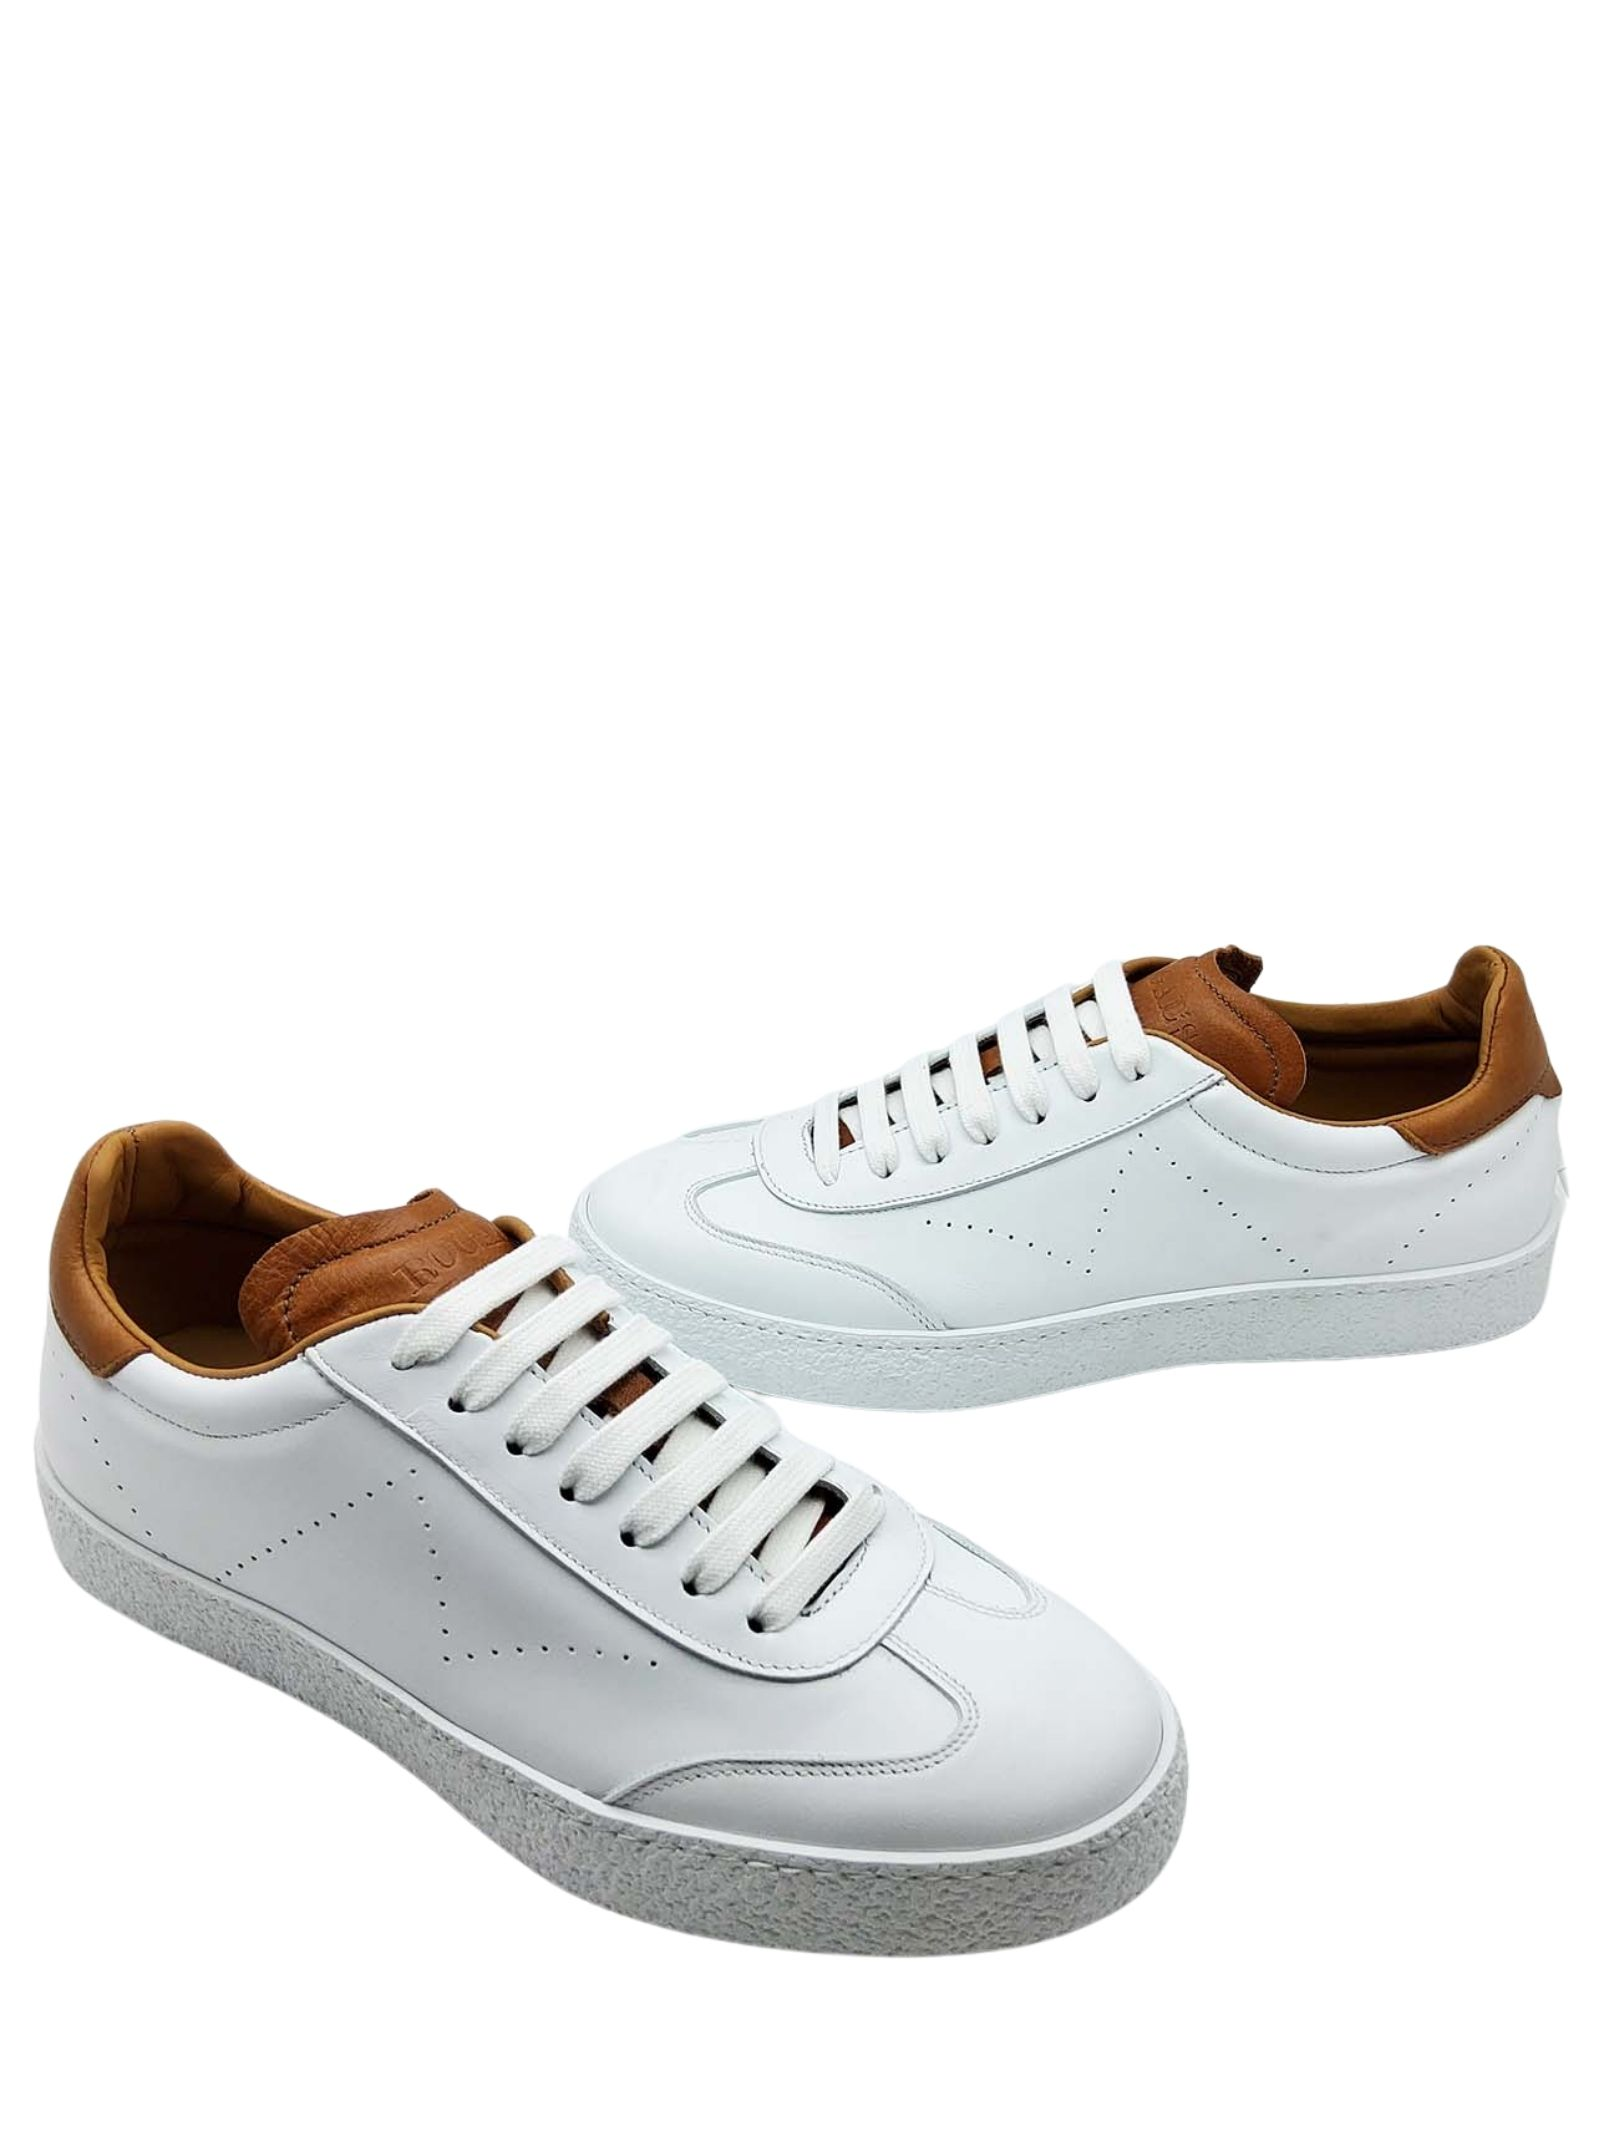 Calzature Uomo Sneakers in Pelle Bianca con Riporti in Pelle Cuoio e Fodera in Pelle Rogal's | Sneakers | PAND3100